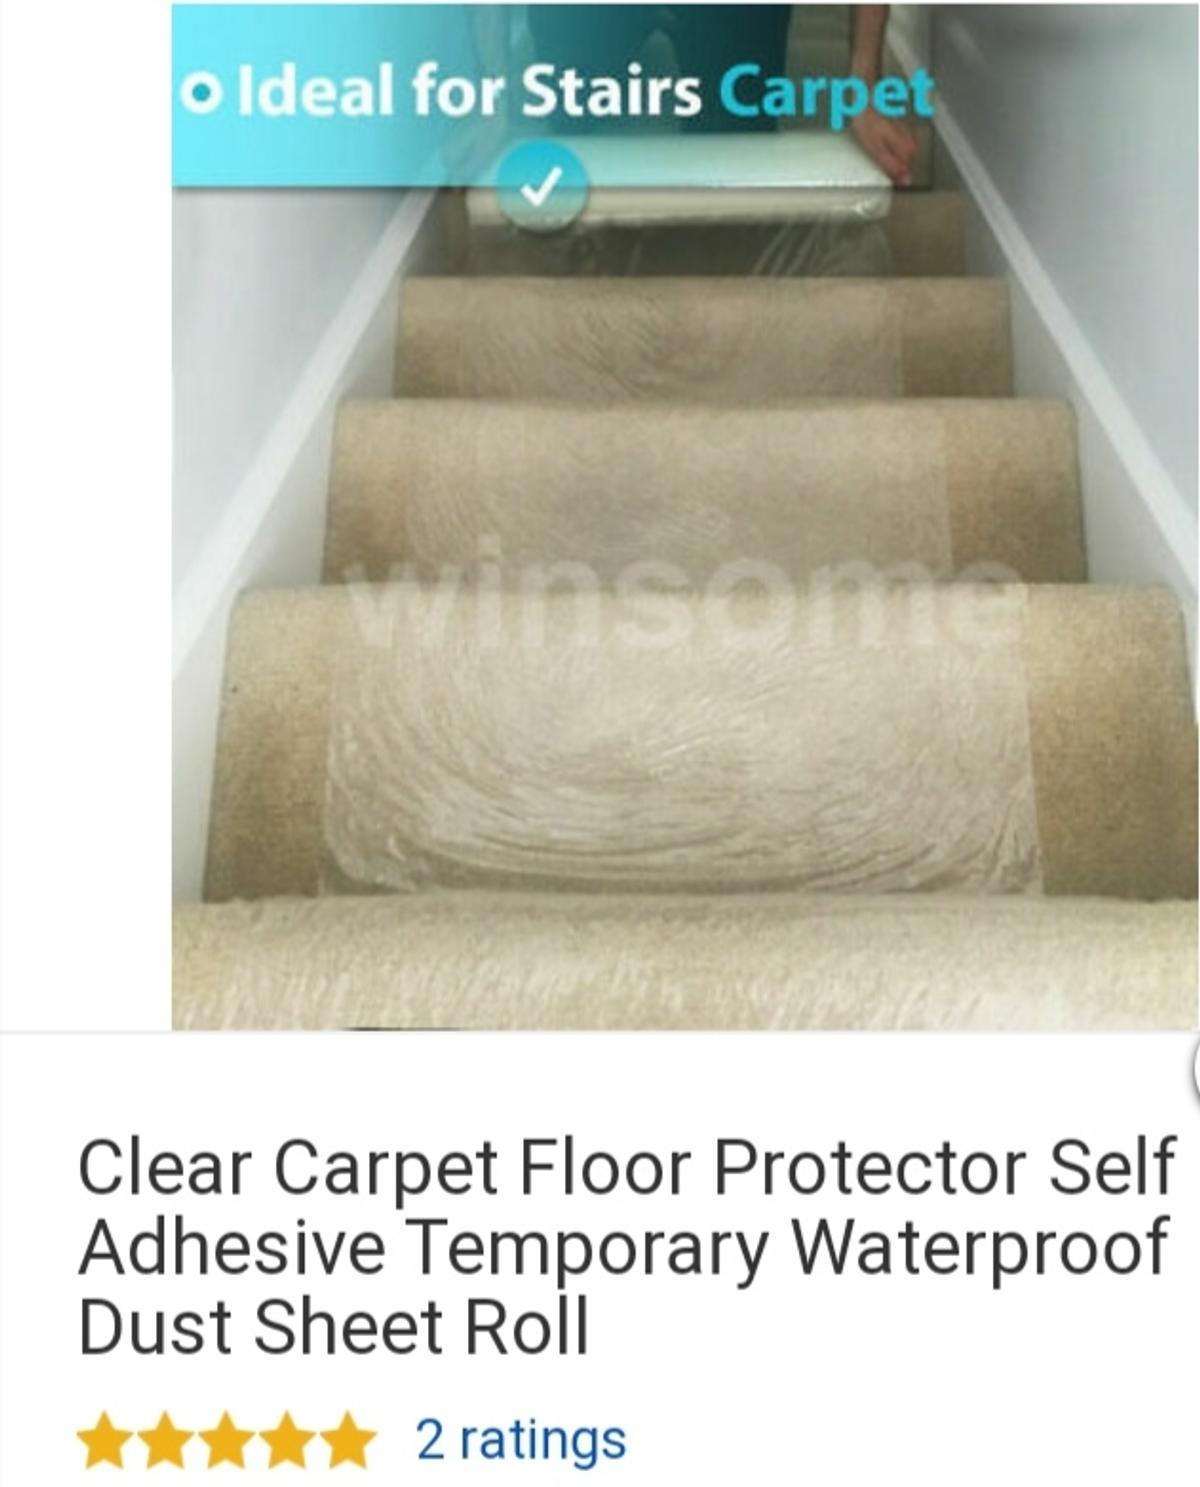 4 Rolls Of Clear Quality Carpet Protector In Nw1 Camden For £20 00 | Temporary Carpet For Stairs | Non Slip | Stair Treads | Tile | Protection | Plastic